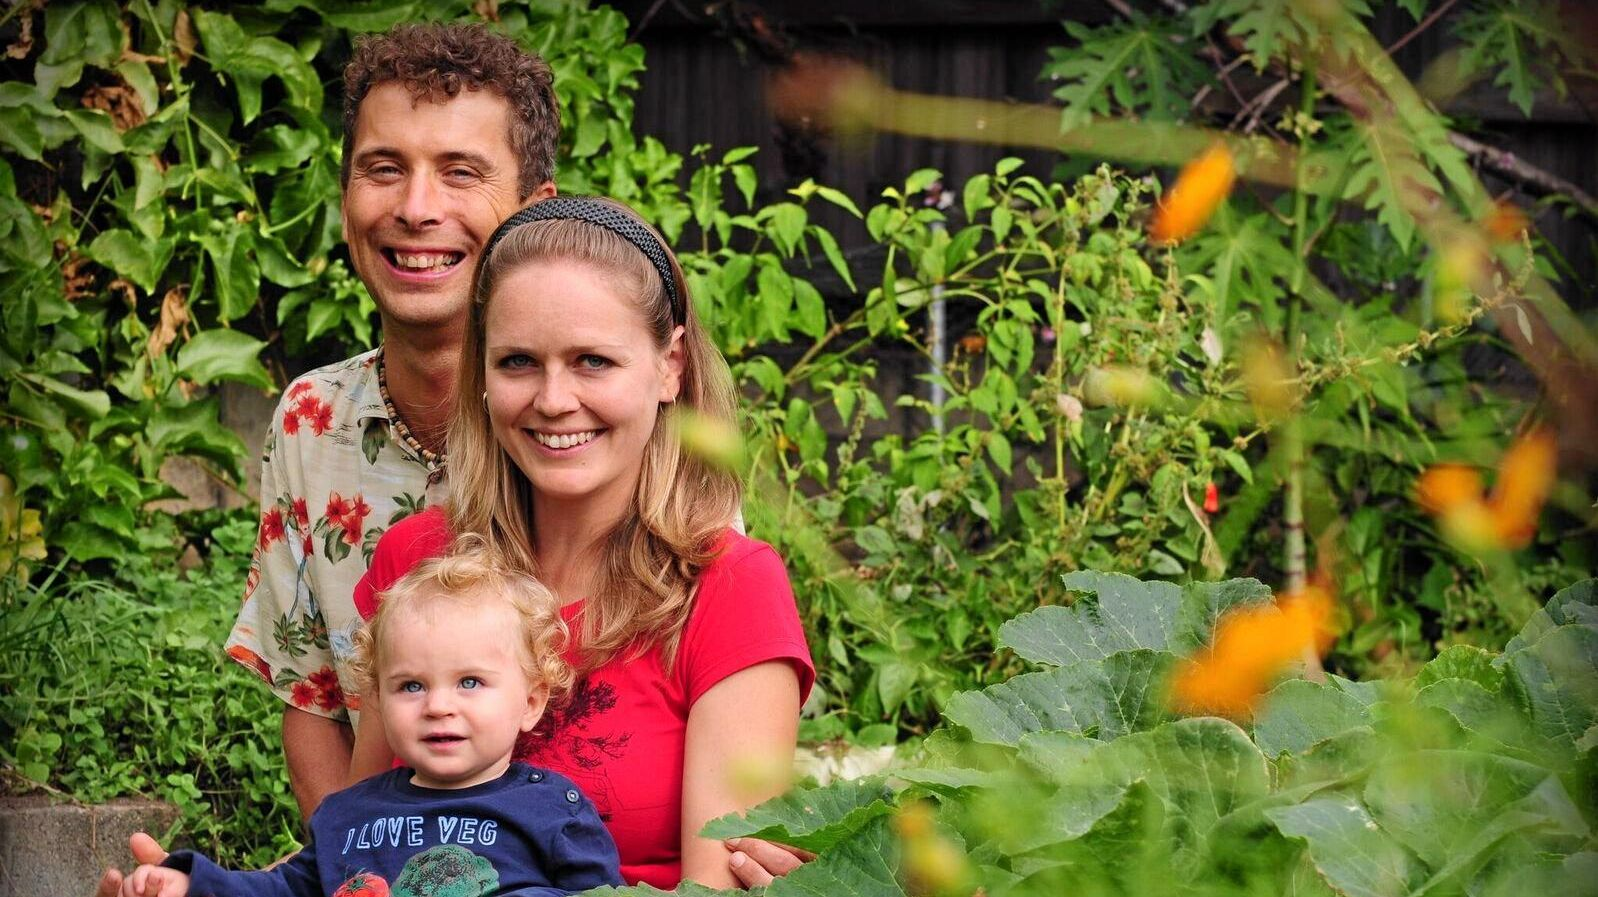 YOU CAN TOO: Roman Spur with his wife Jana and his daughter Lada  are living a clean, green and affordable life.